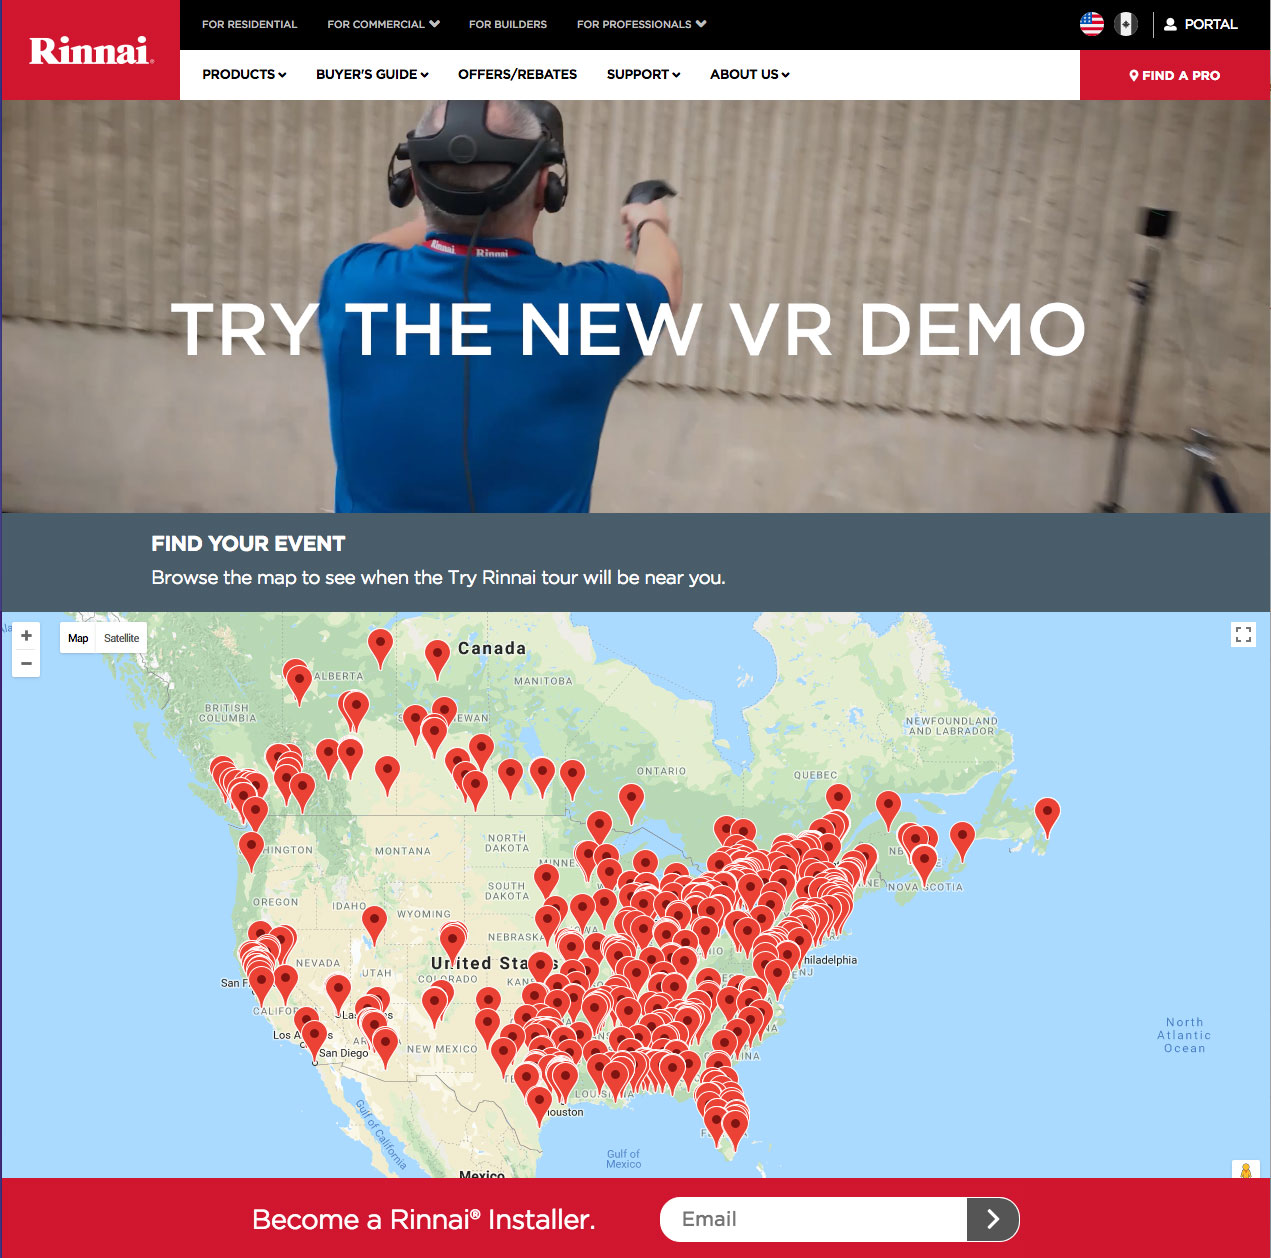 learn how to install a tankless water heater using vr virtual reality rh groovejones com Rinnai Tankless Water Heater Installation Rinnai Tankless Water Heater Installation